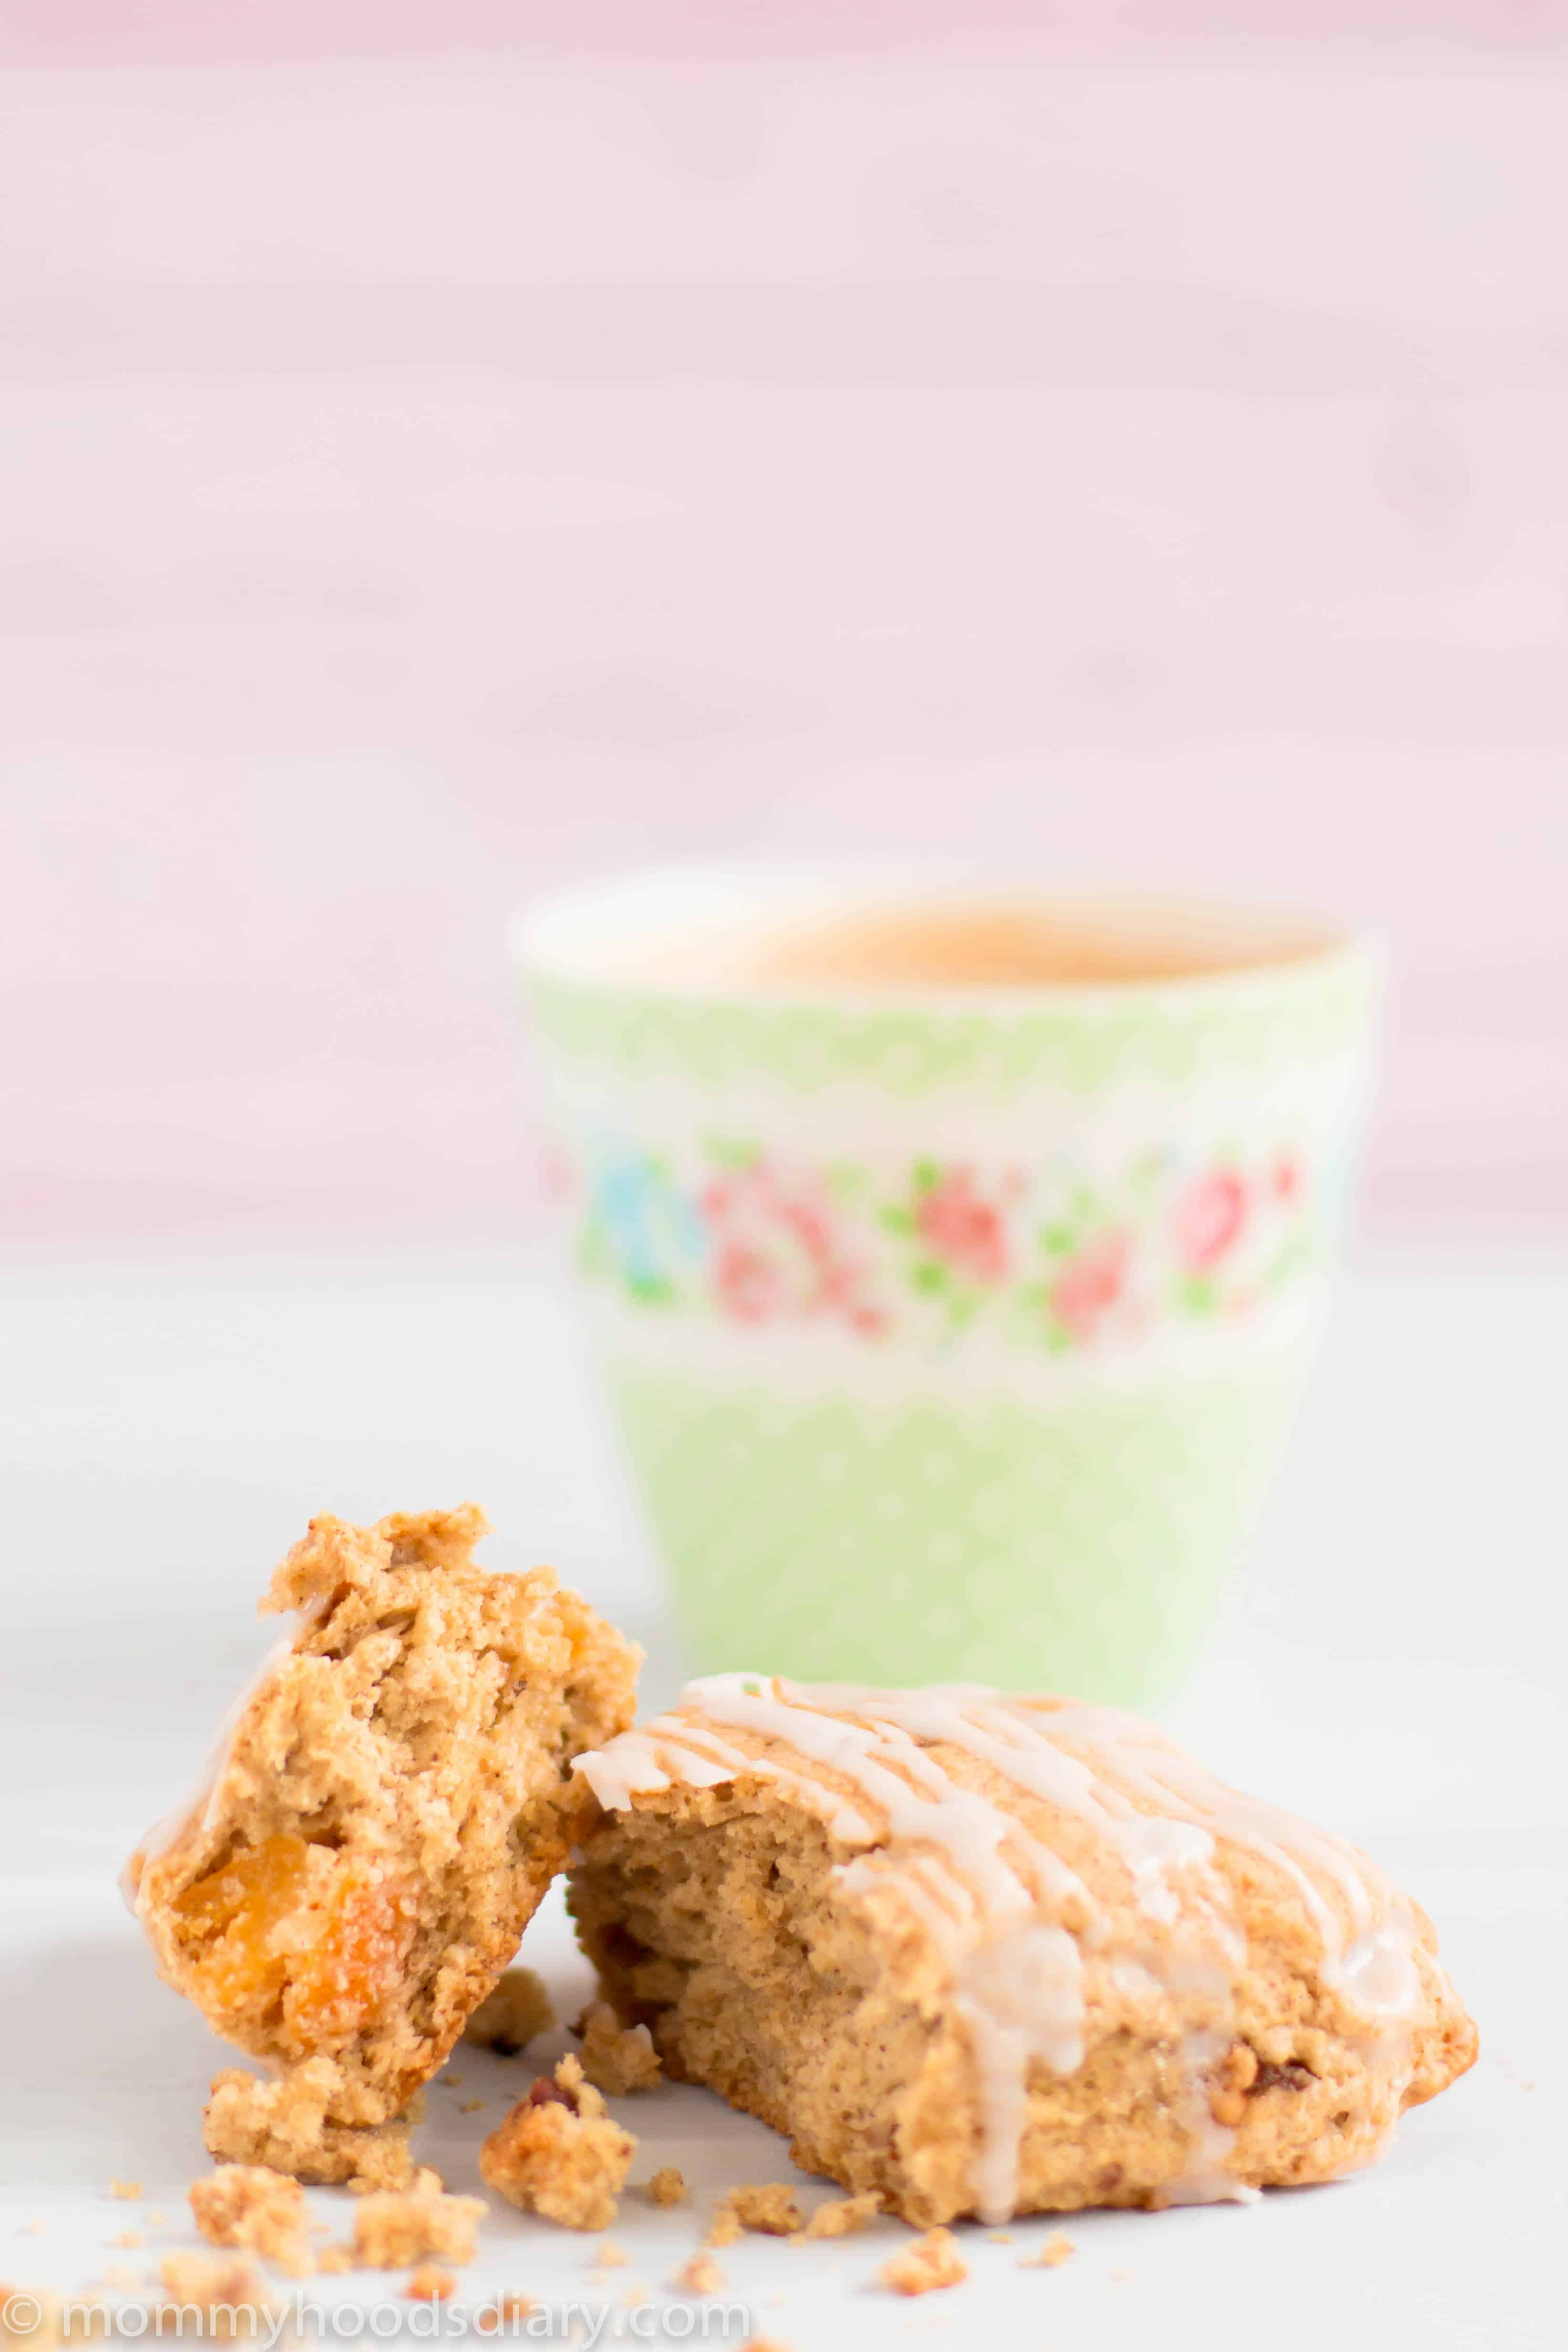 These Gingerbread Apricot Scones are simply delicious!! They're delicate, flaky, lightly sweet and full of all the cozy holiday's flavors. Perfect with a cup of coffee or tea on a chilly winter morning.  https://mommyshomecooking.com